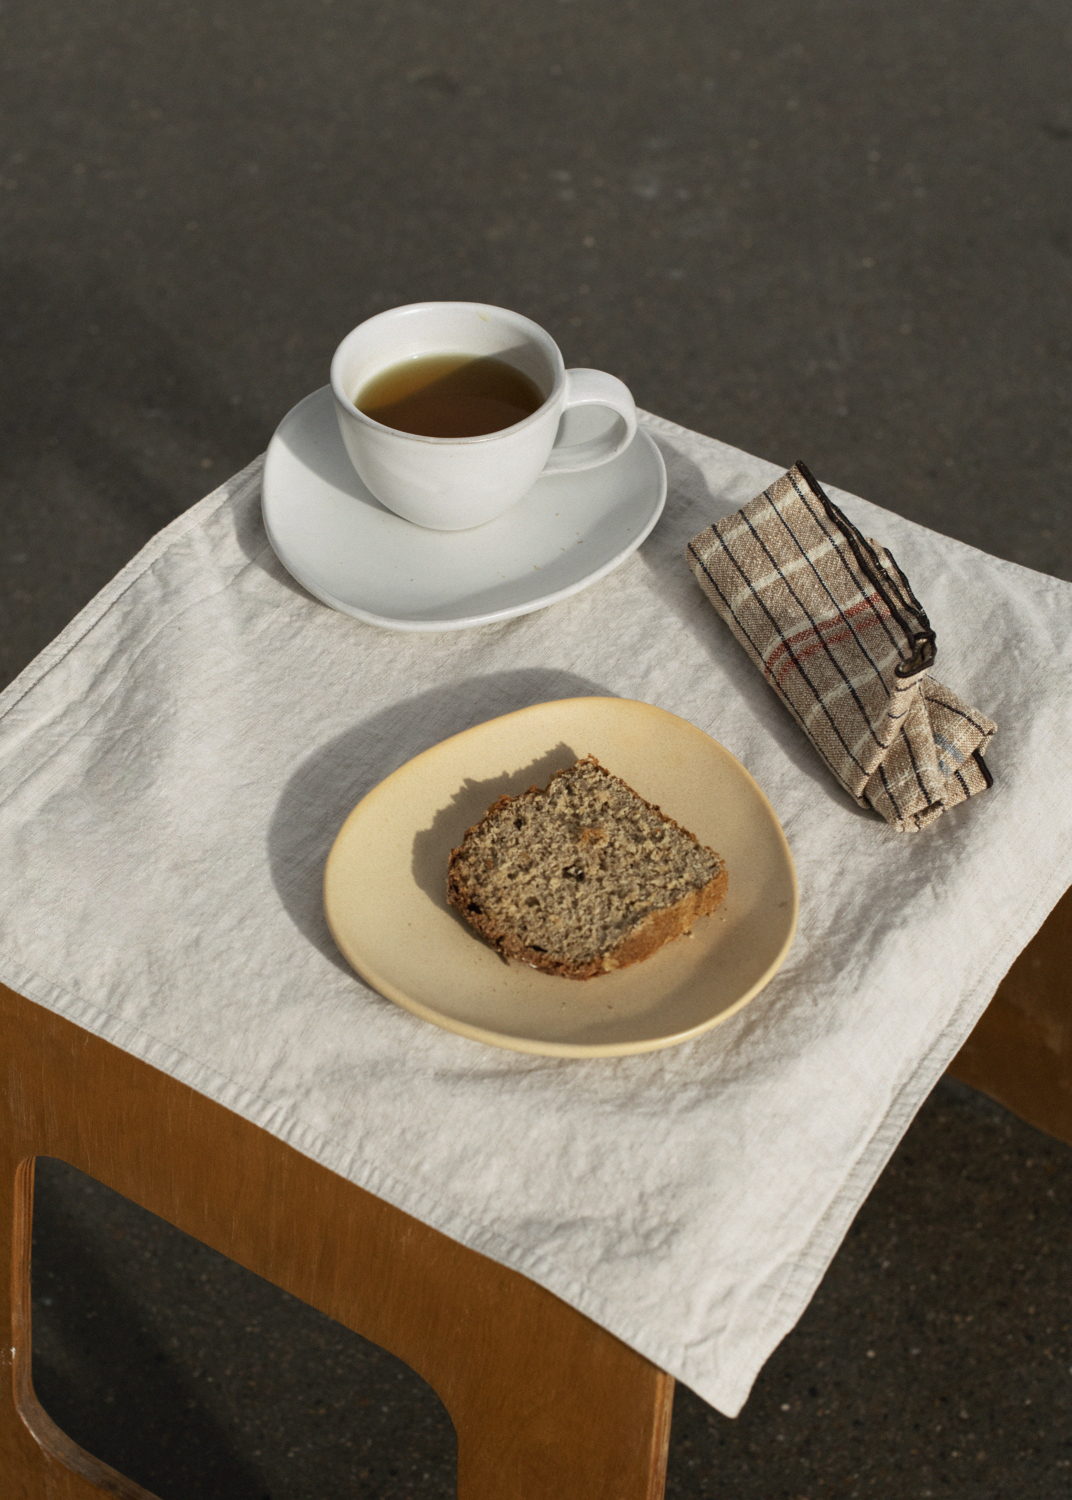 Kitchen Accessories - Placemat Cotton Slub (set of 2 pcs)